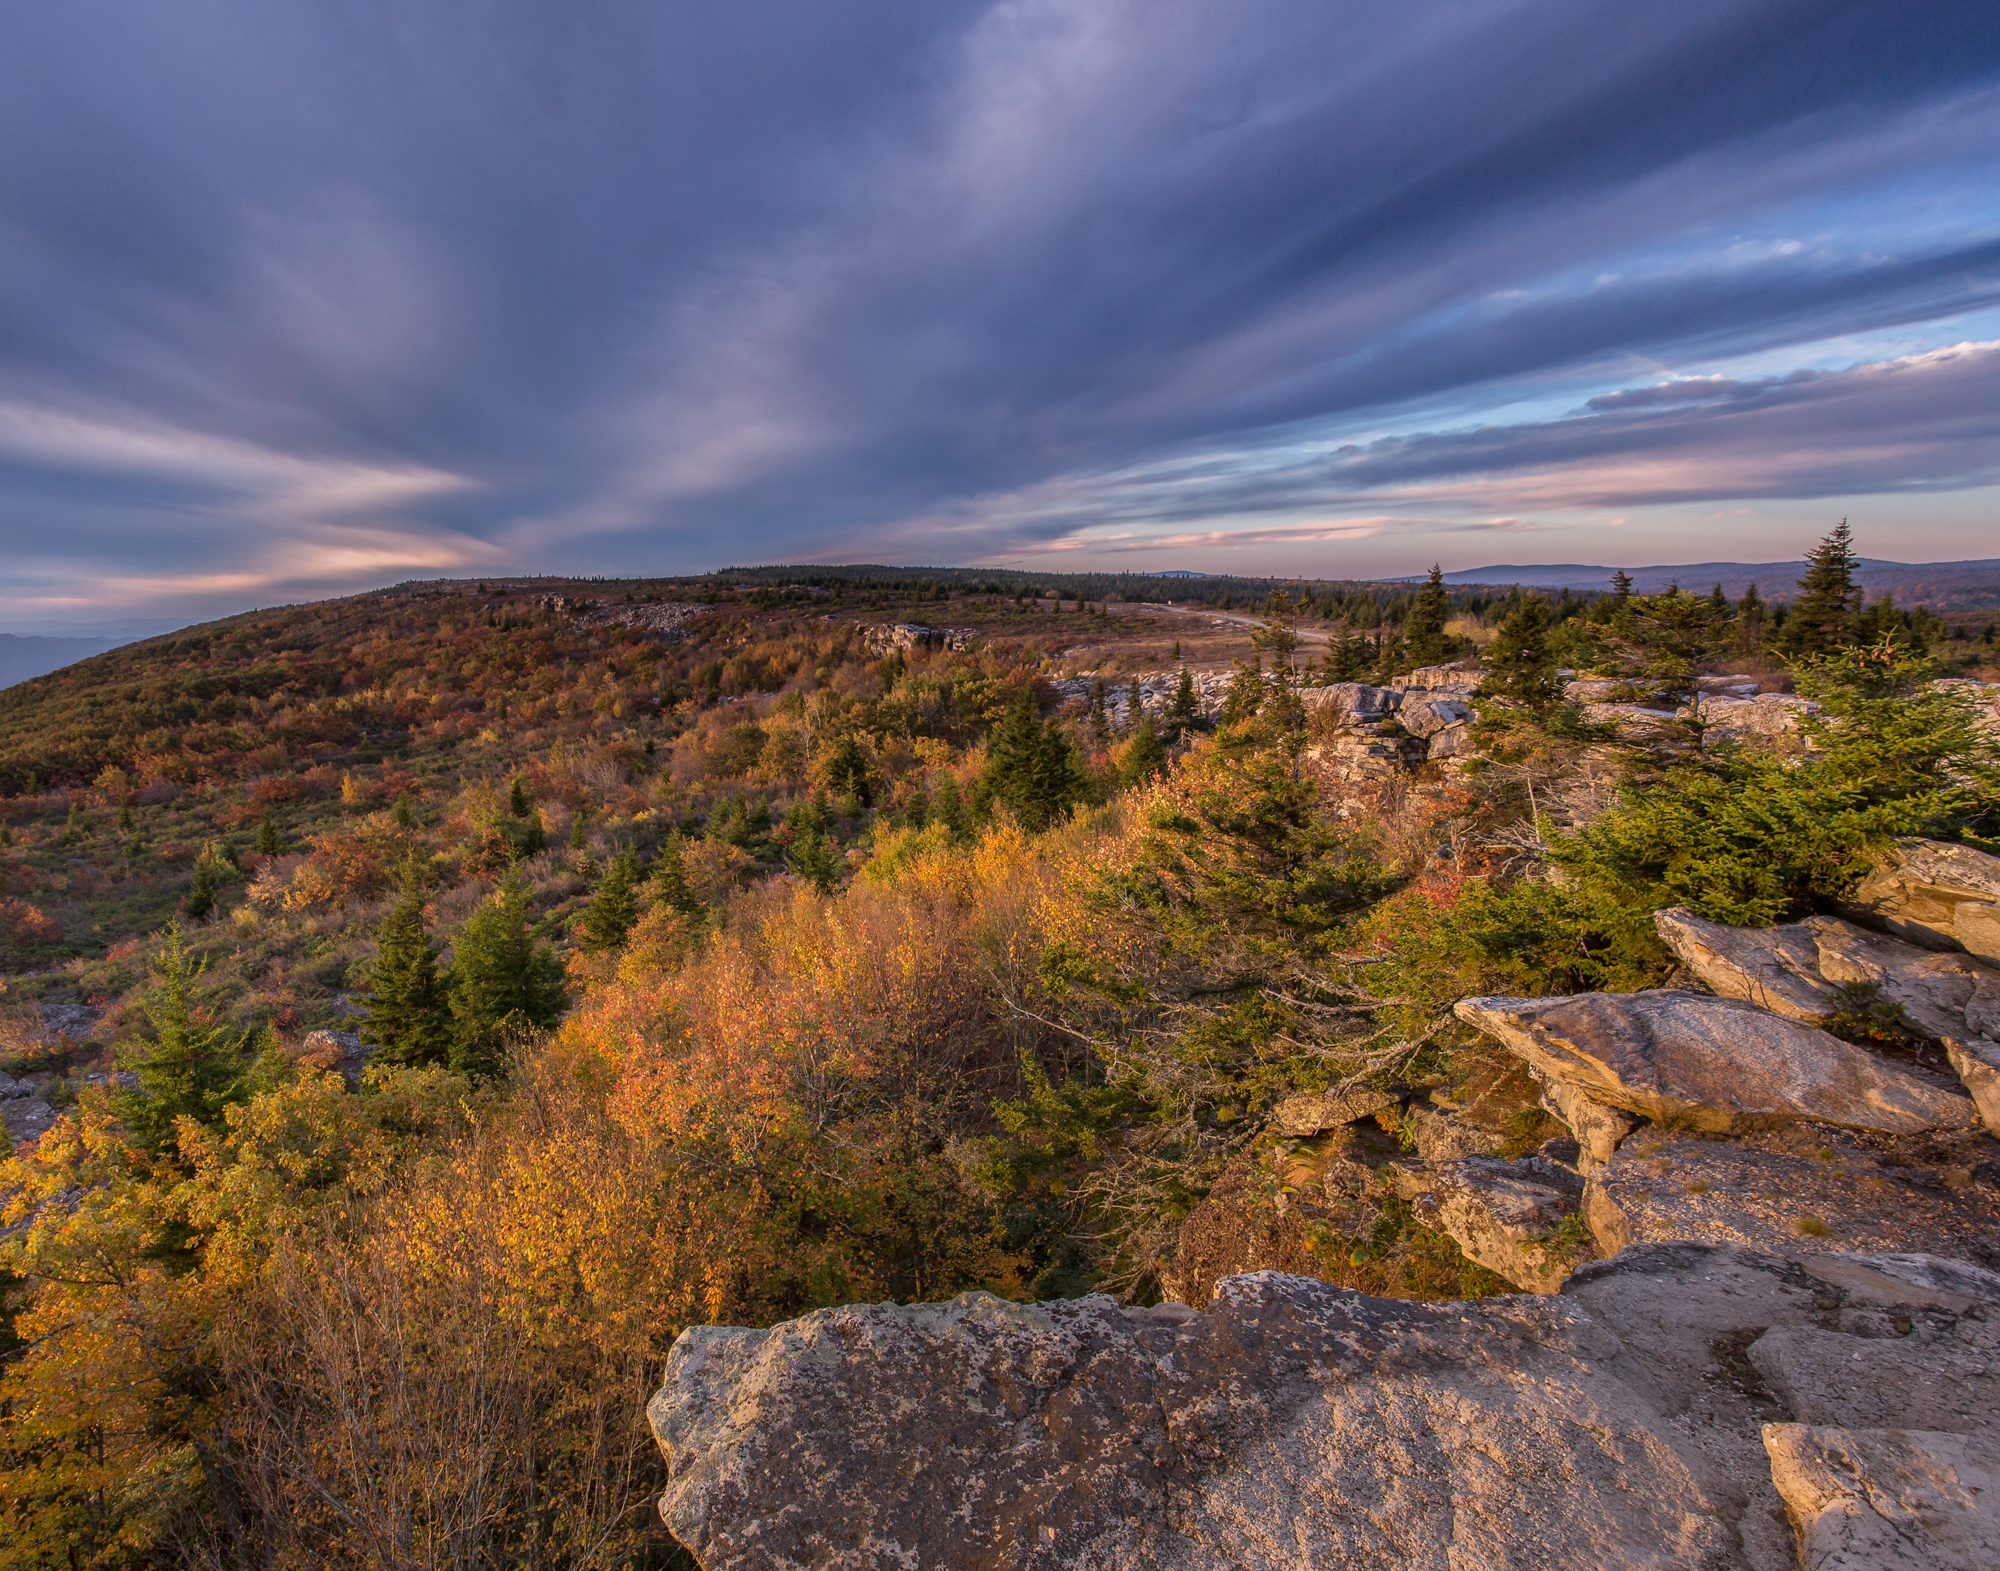 44. Dolly Sods Wilderness, West Virginia